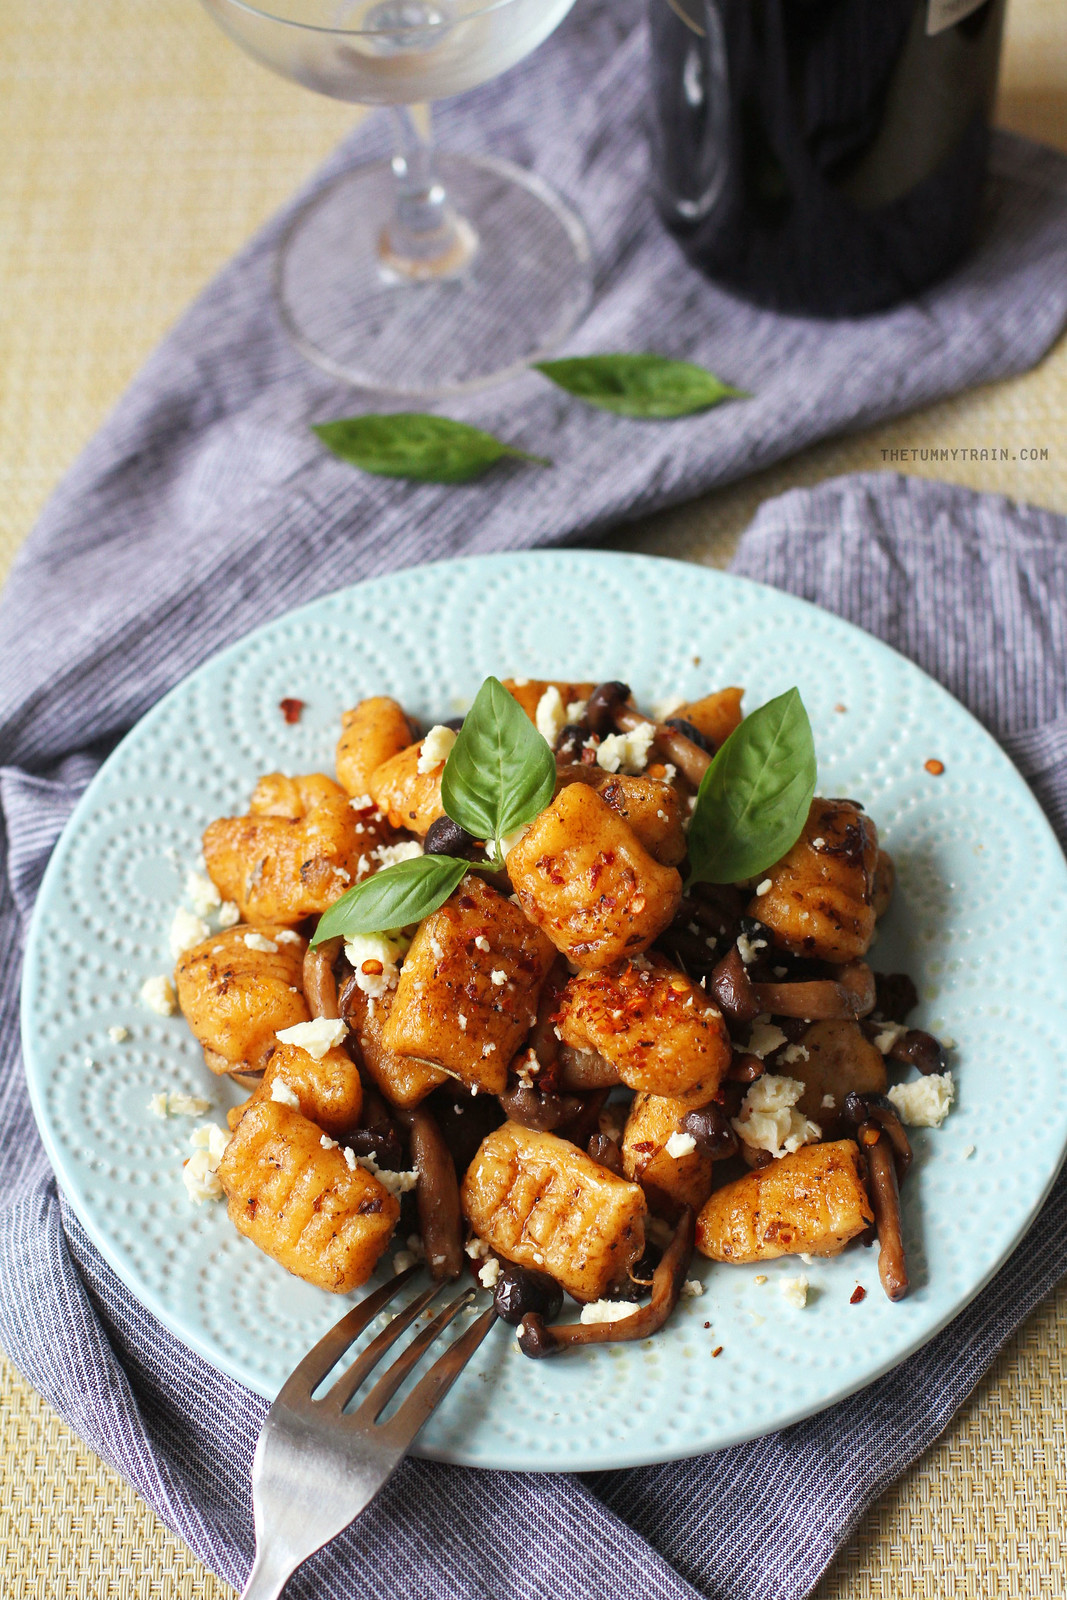 30483800522 d102c9958a h - Striking up a new love affair with this Sweet Potato Gnocchi Recipe